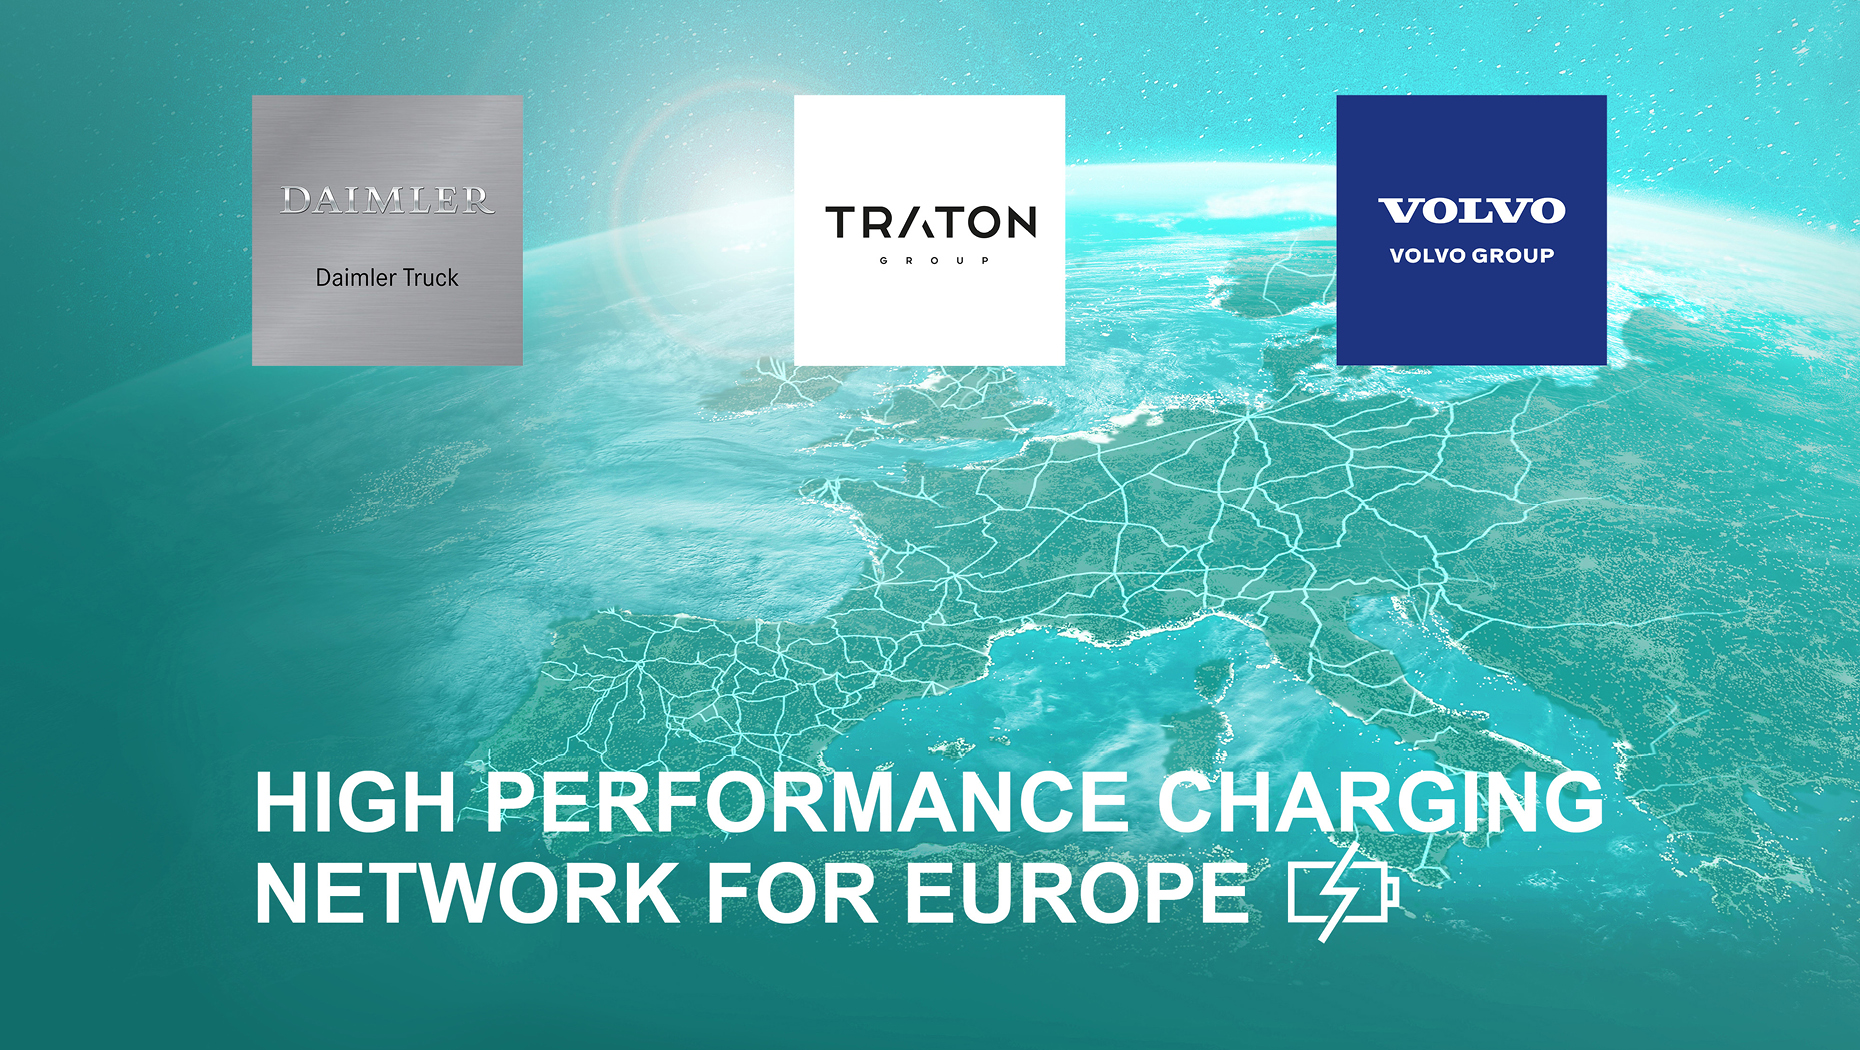 Leading Commercial Automakers TRATON GROUP, Volvo, and Daimler Truck To Form a $593 Million JV to Develop Electric Truck Charging Network in Europe